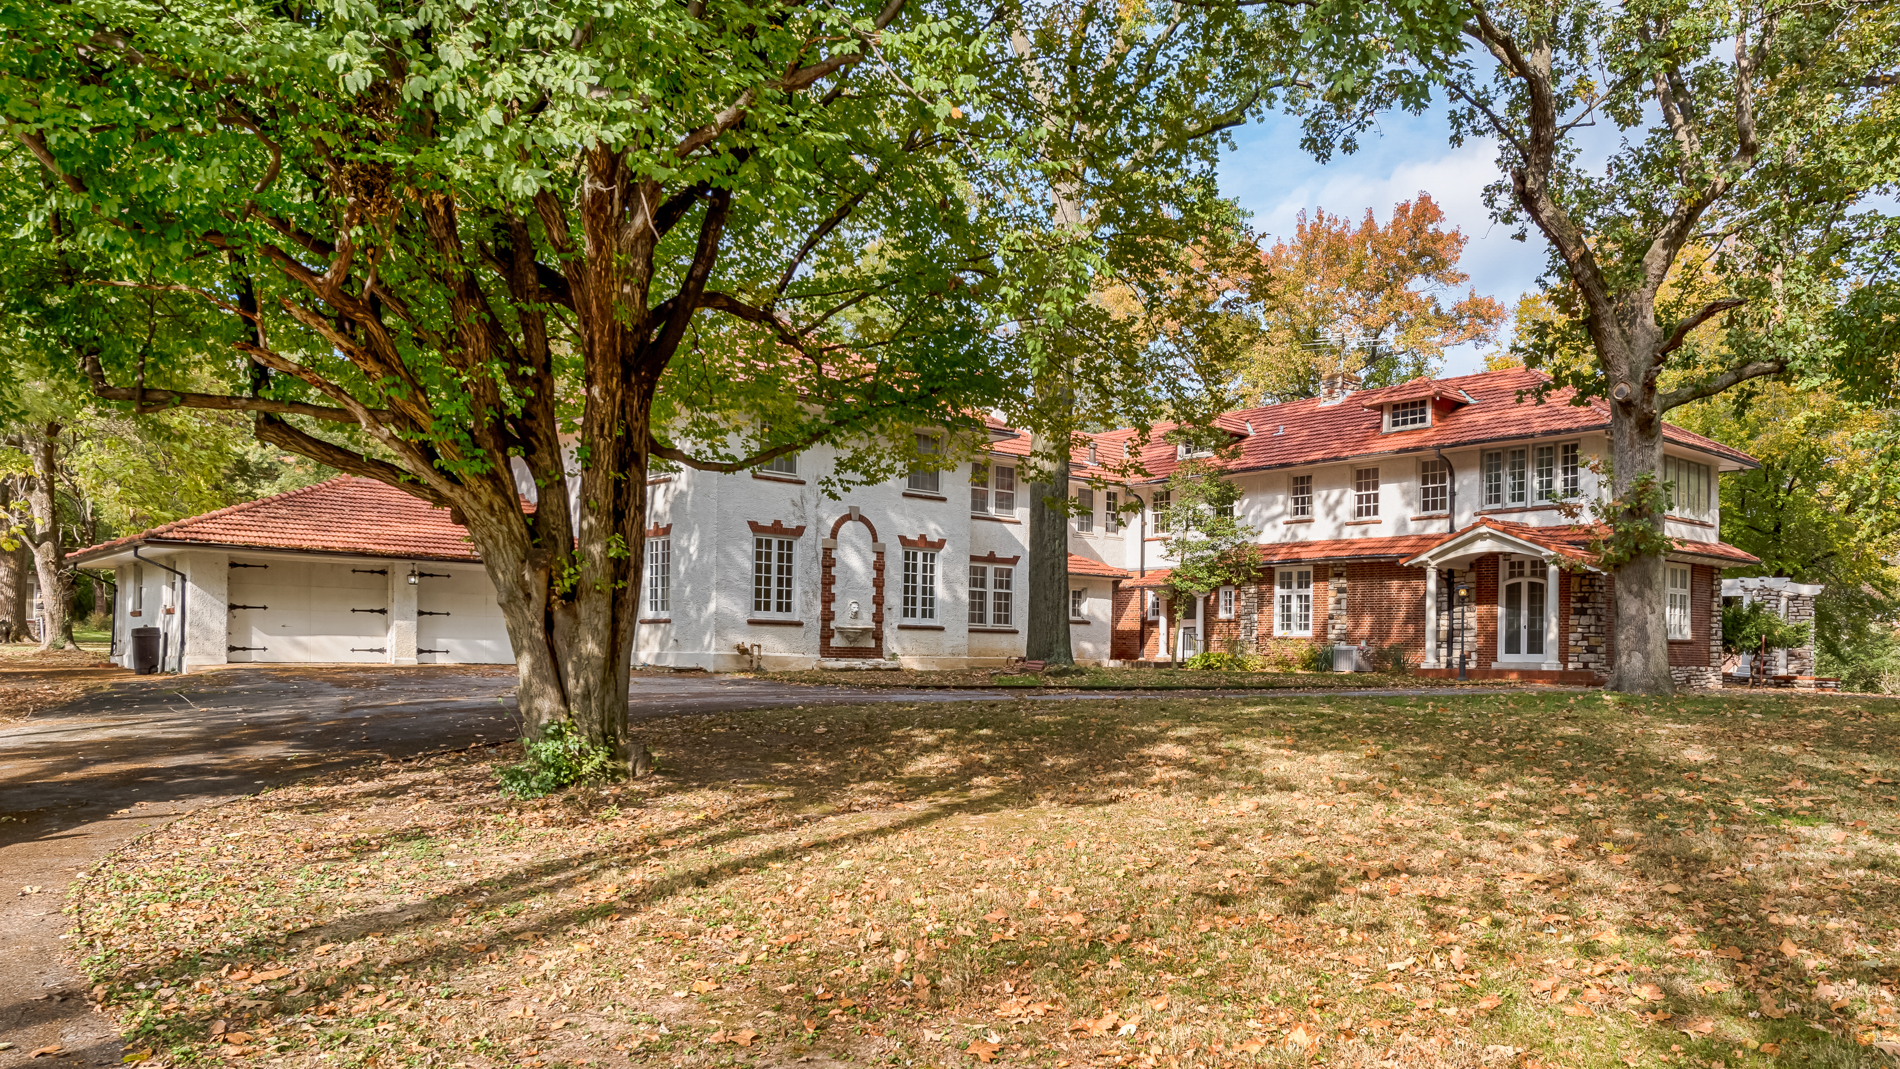 Single Family Homes for Sale at The Watkins Estate 1601 South Warson Road Ladue, Missouri 63124 United States